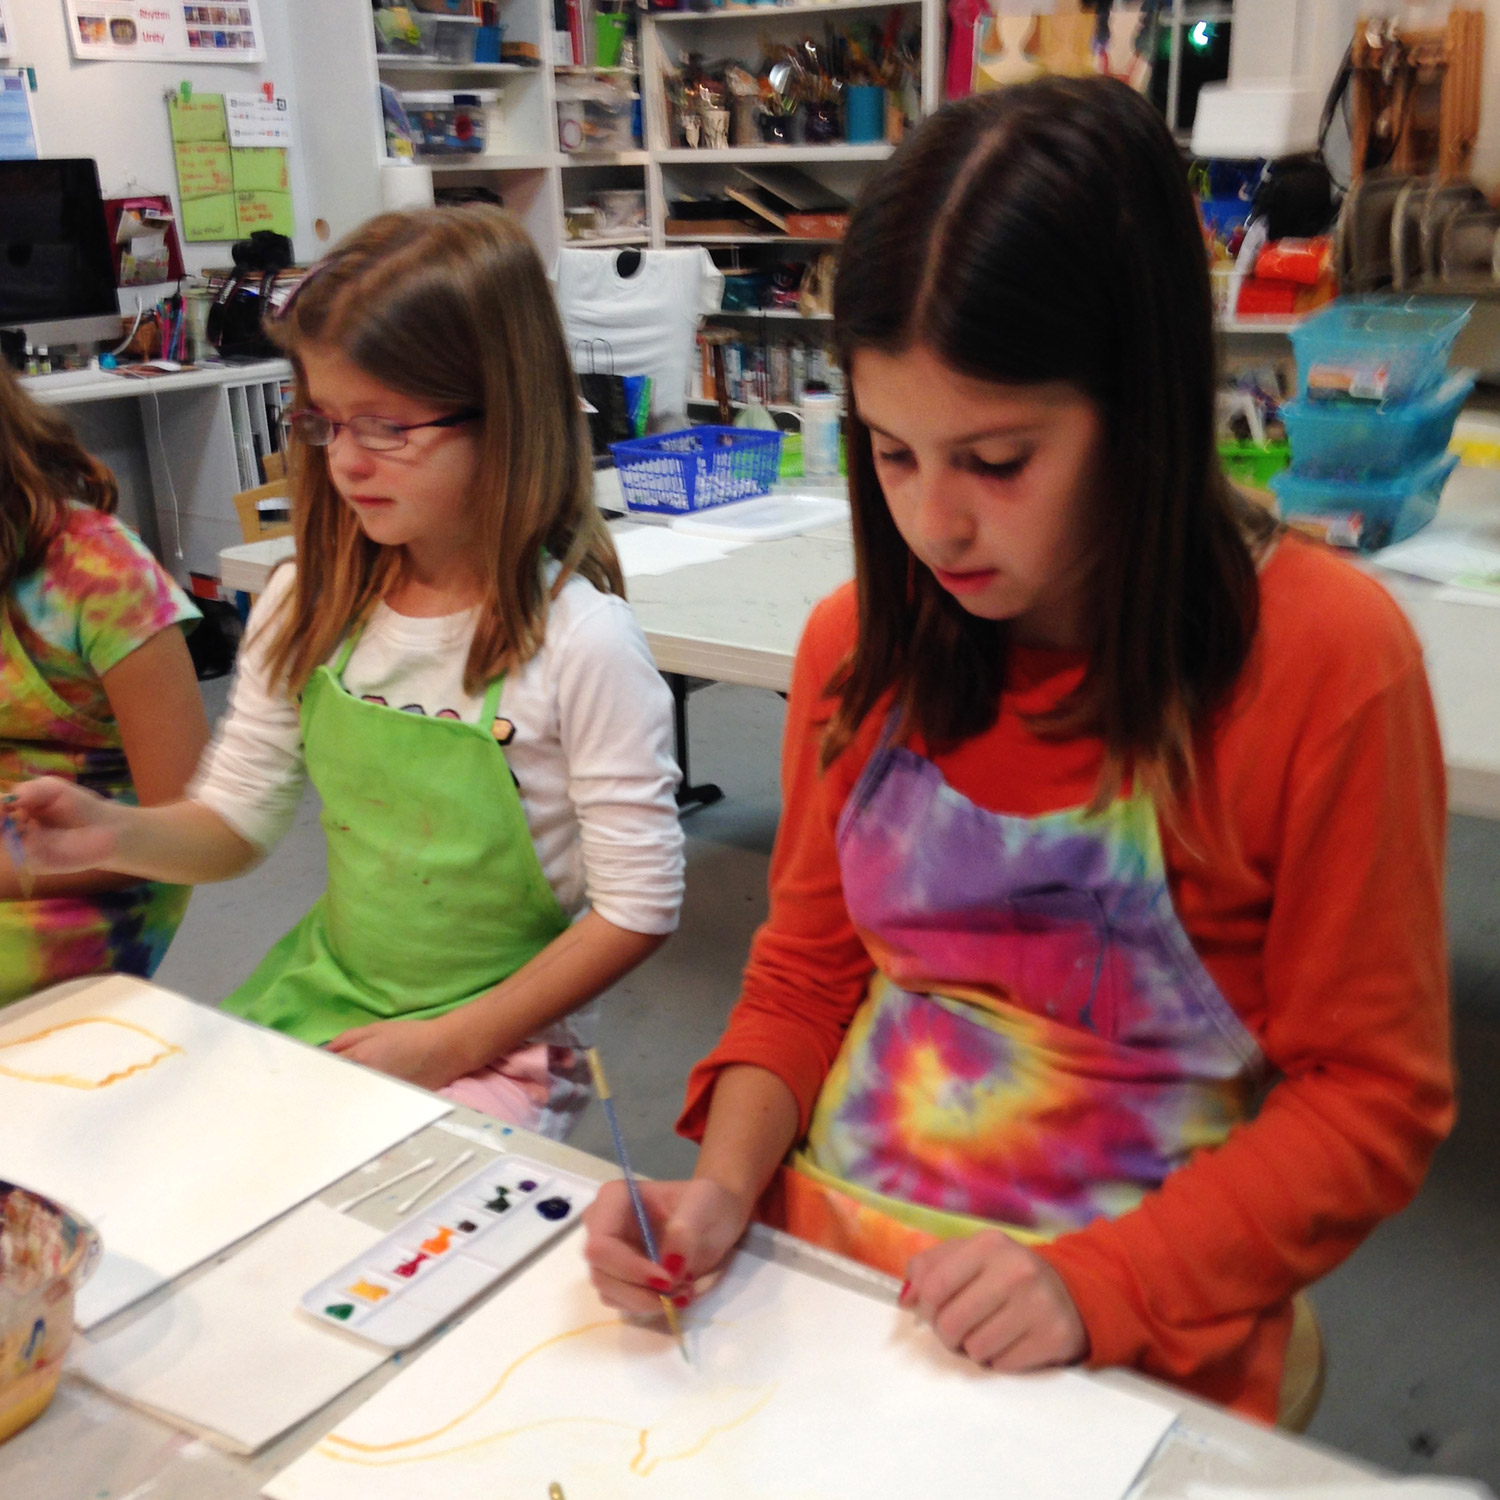 kids-making-art-at-camp-with-art-by-tjm-greensboro-img_0053sq.jpg